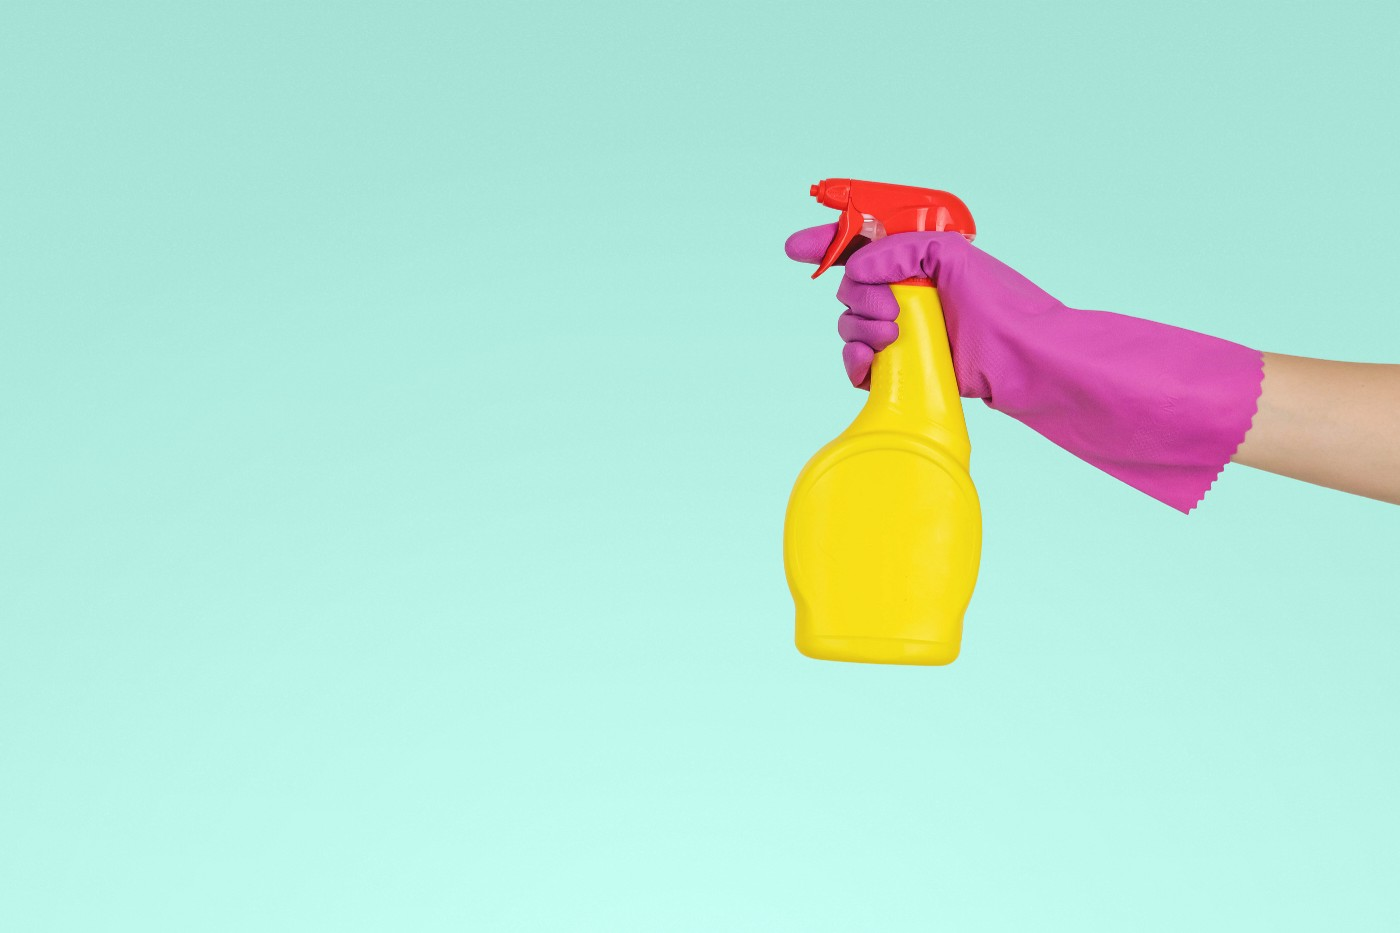 Pink-gloved hand holding yellow cleaning bottle with red top.